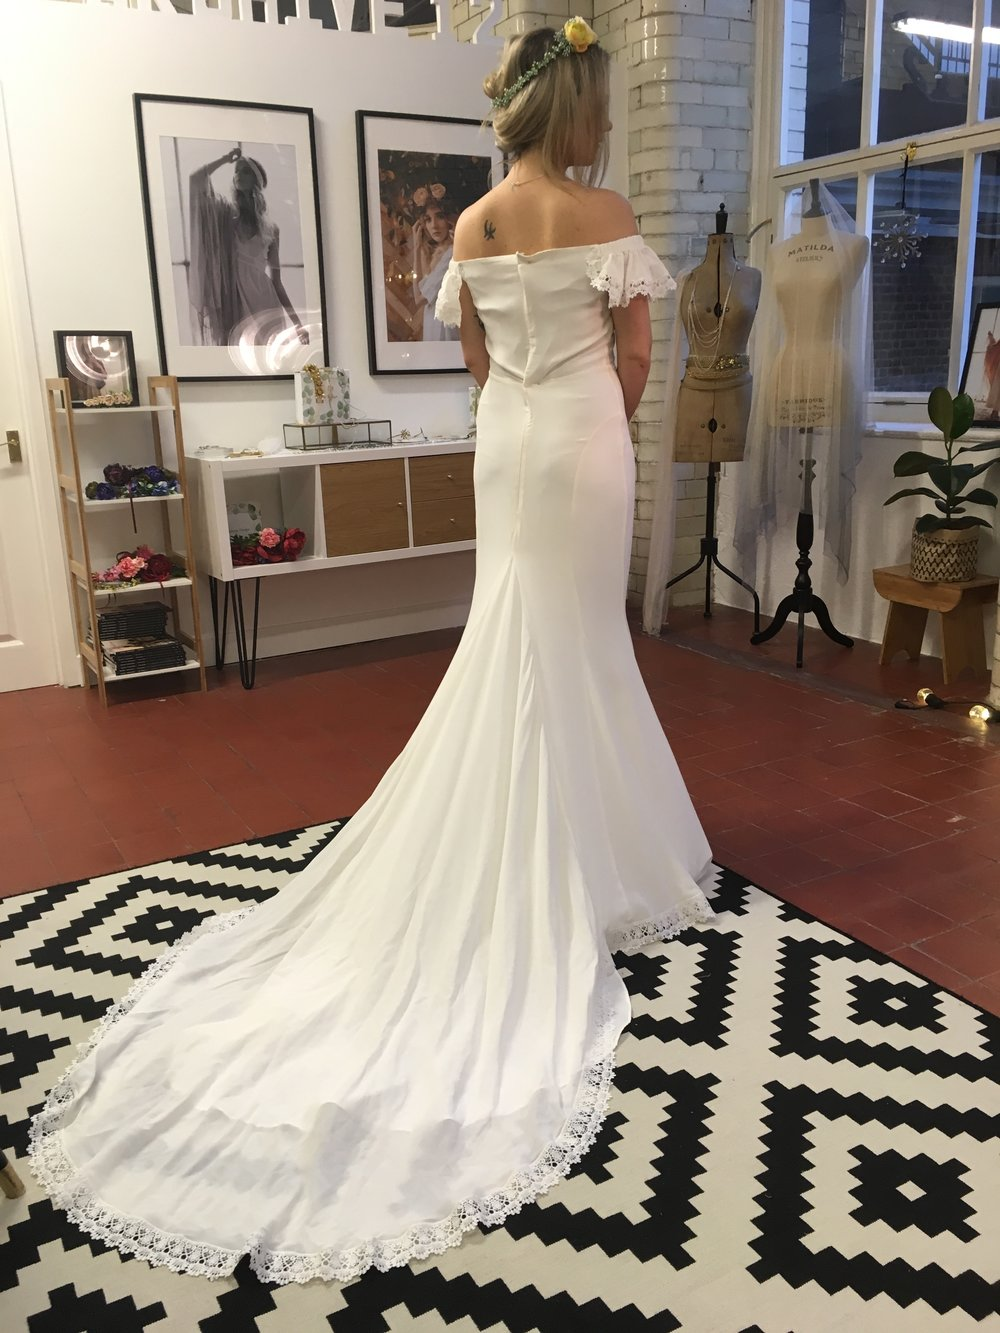 anti bride wedding dress shopping Archive 12